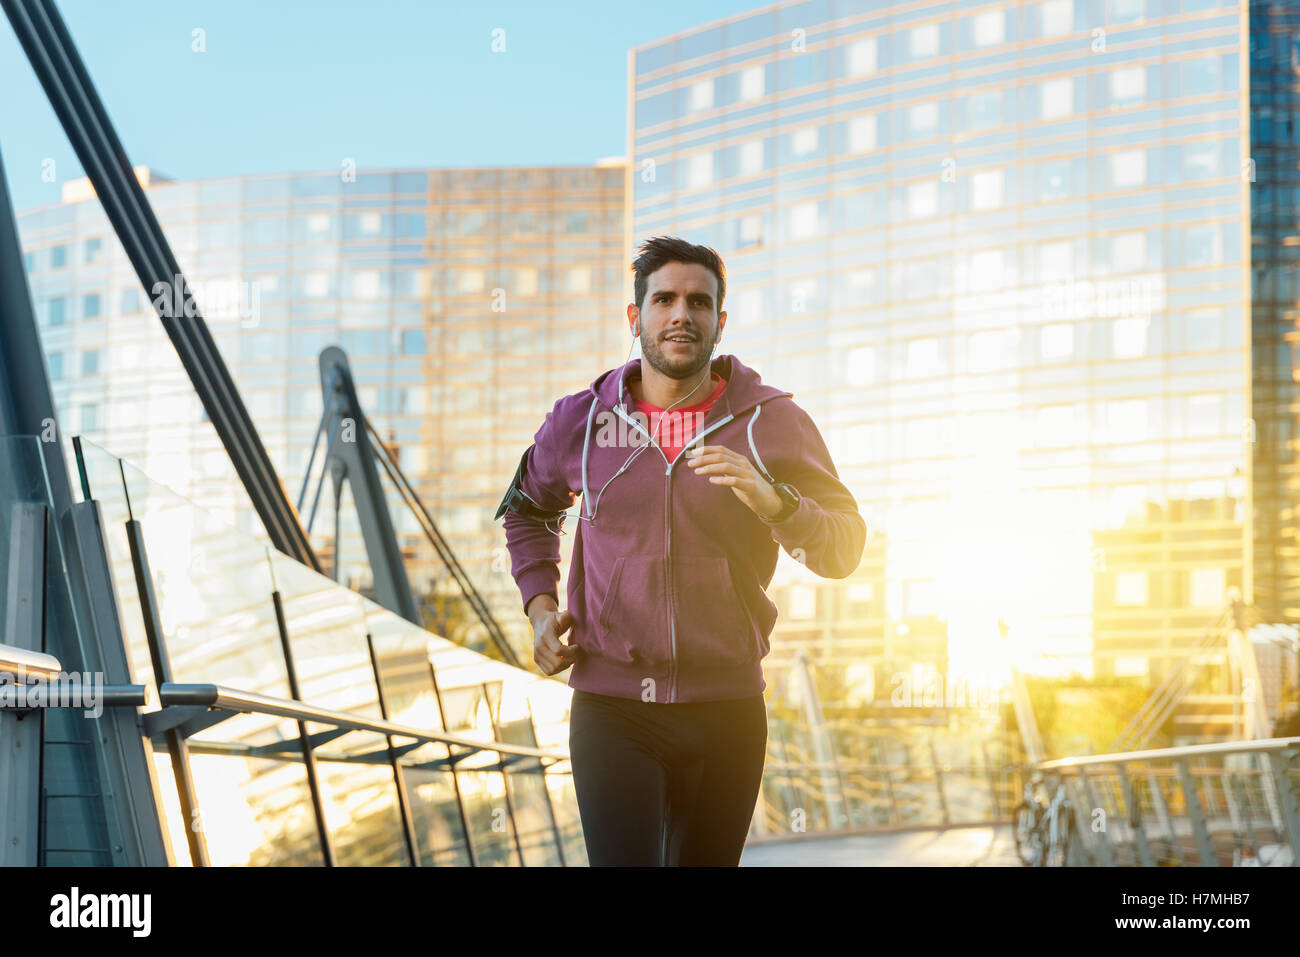 athlete with earphones running in the city - Stock Image